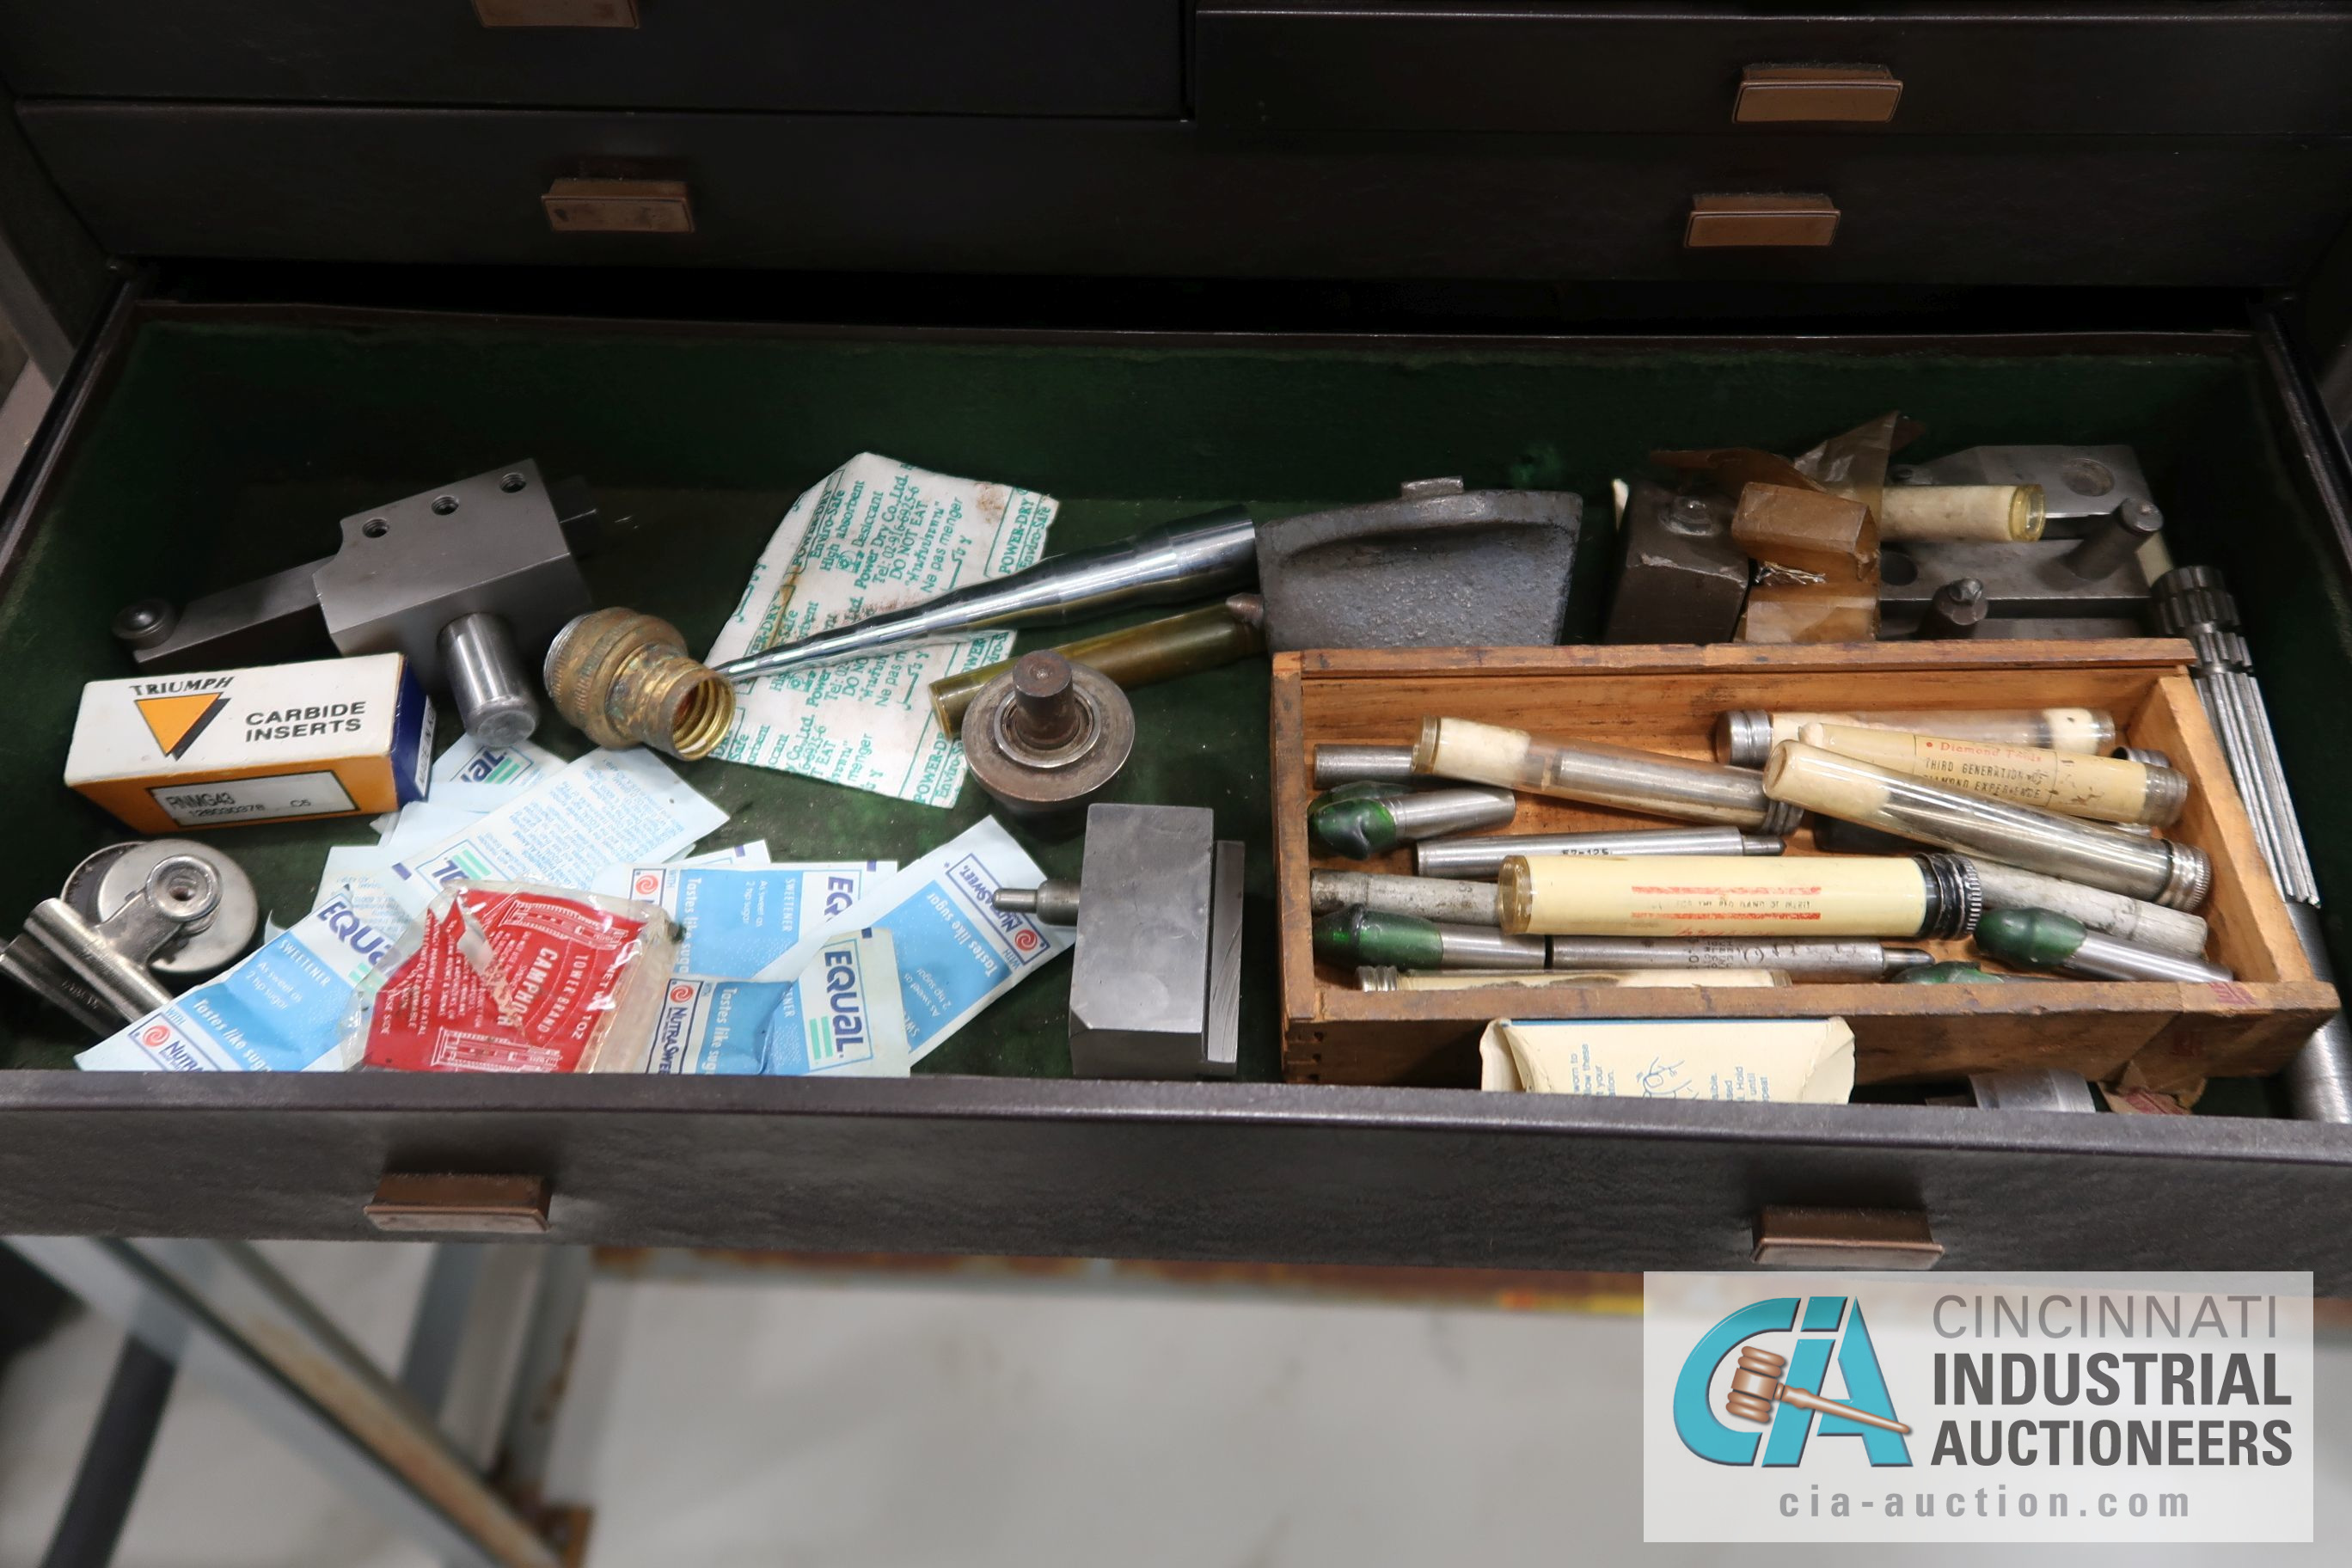 KENNEDY MACHINIST TOOL CHESTS WITH MISCELLANEOUS - Image 6 of 7